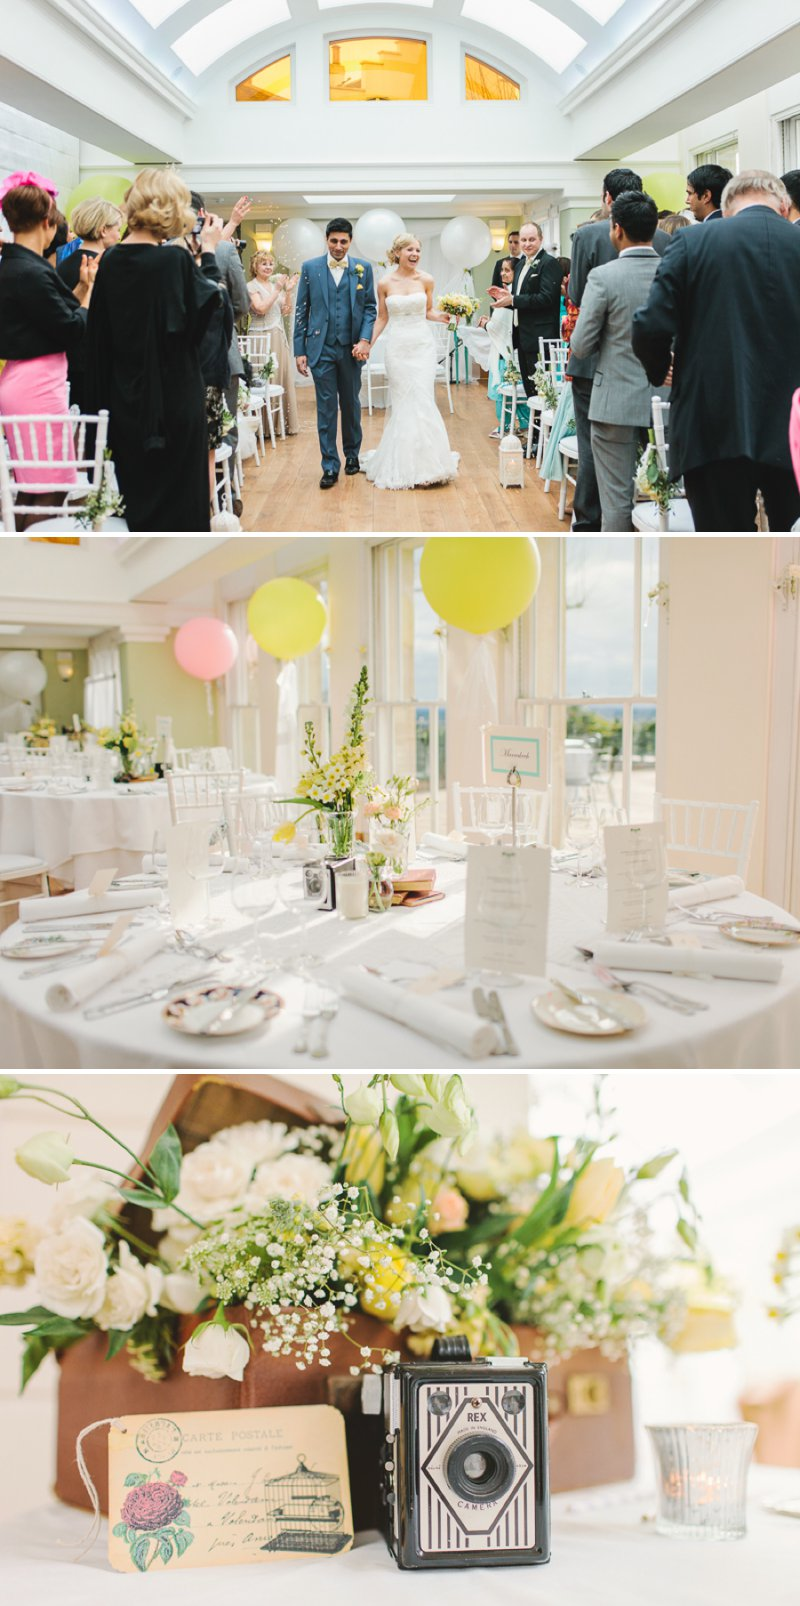 Yellow Themed Vintage Inspired Easter Wedding At Pembroke Lodge Richmond Park With Bride In Balira By Pronovias And Burberry Sandals With Groom In Blue Reiss Suit And Bridesmaids In Yellow Vintage Dresses With Images By Shell De Mar 6